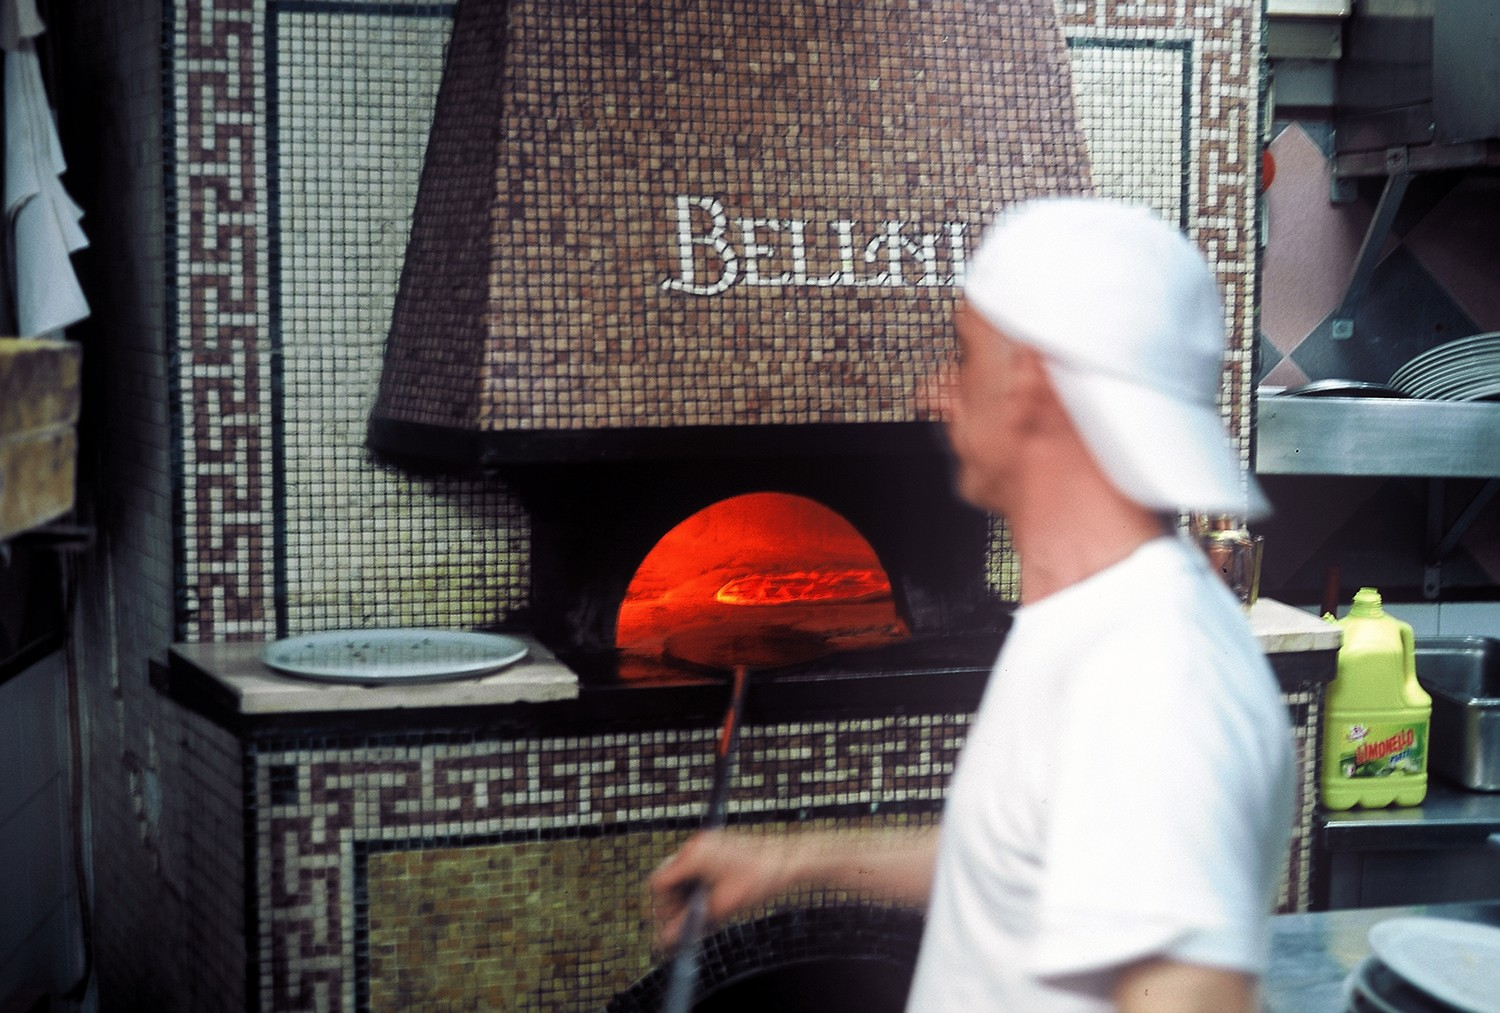 Bellini's pizzaiolo baking the pie I'd eventually scarf. Theirs was among the most beautiful old ovens I came across in Naples.